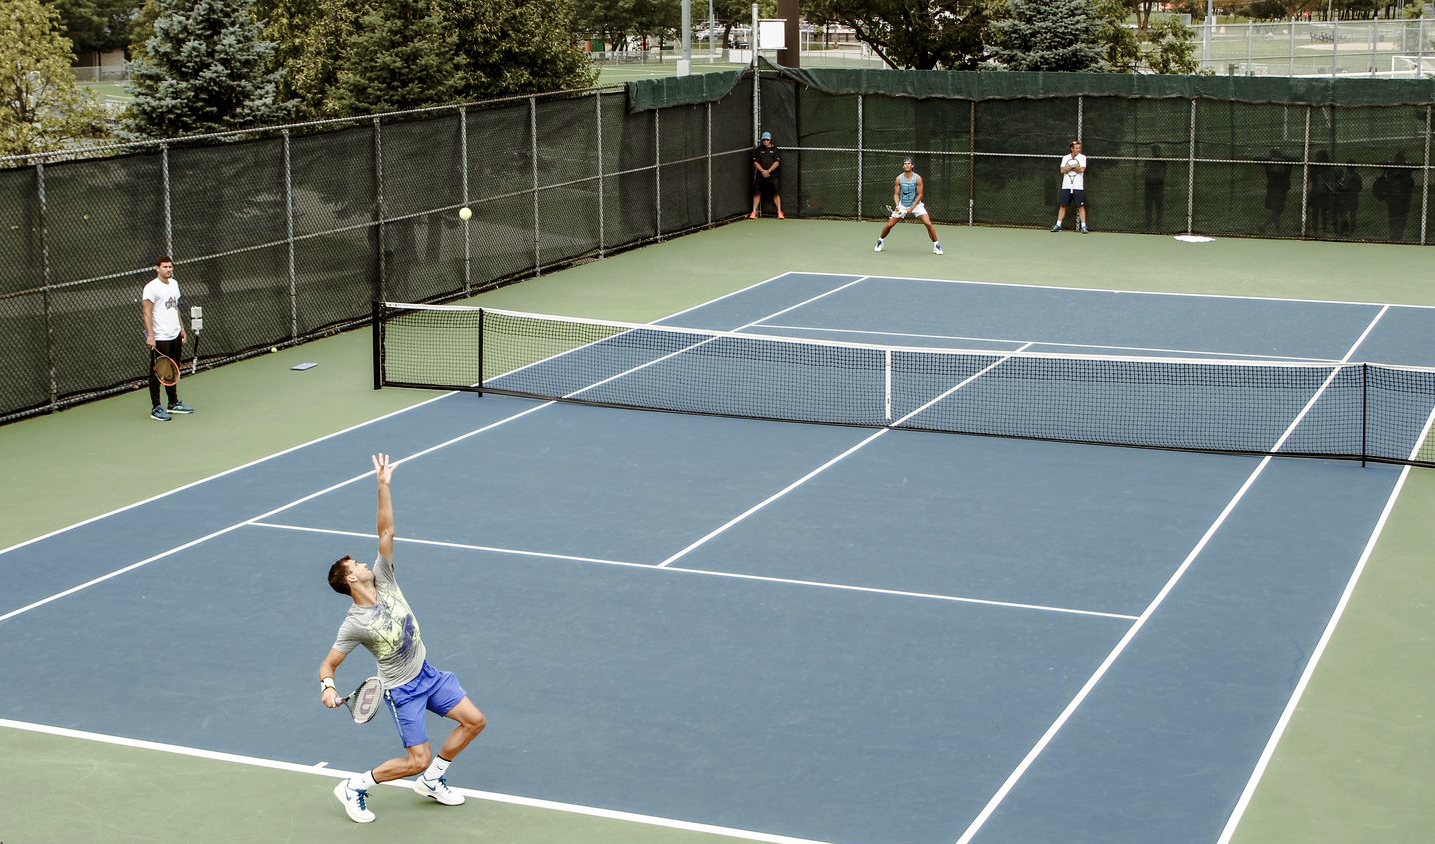 A league for all levels - Join Portland's World Team Tennis and get ready meet new folks and hit some balls with opponents at your level. Proceeds from WTT go directly to our charitable programs!FIND A LEAGUE >